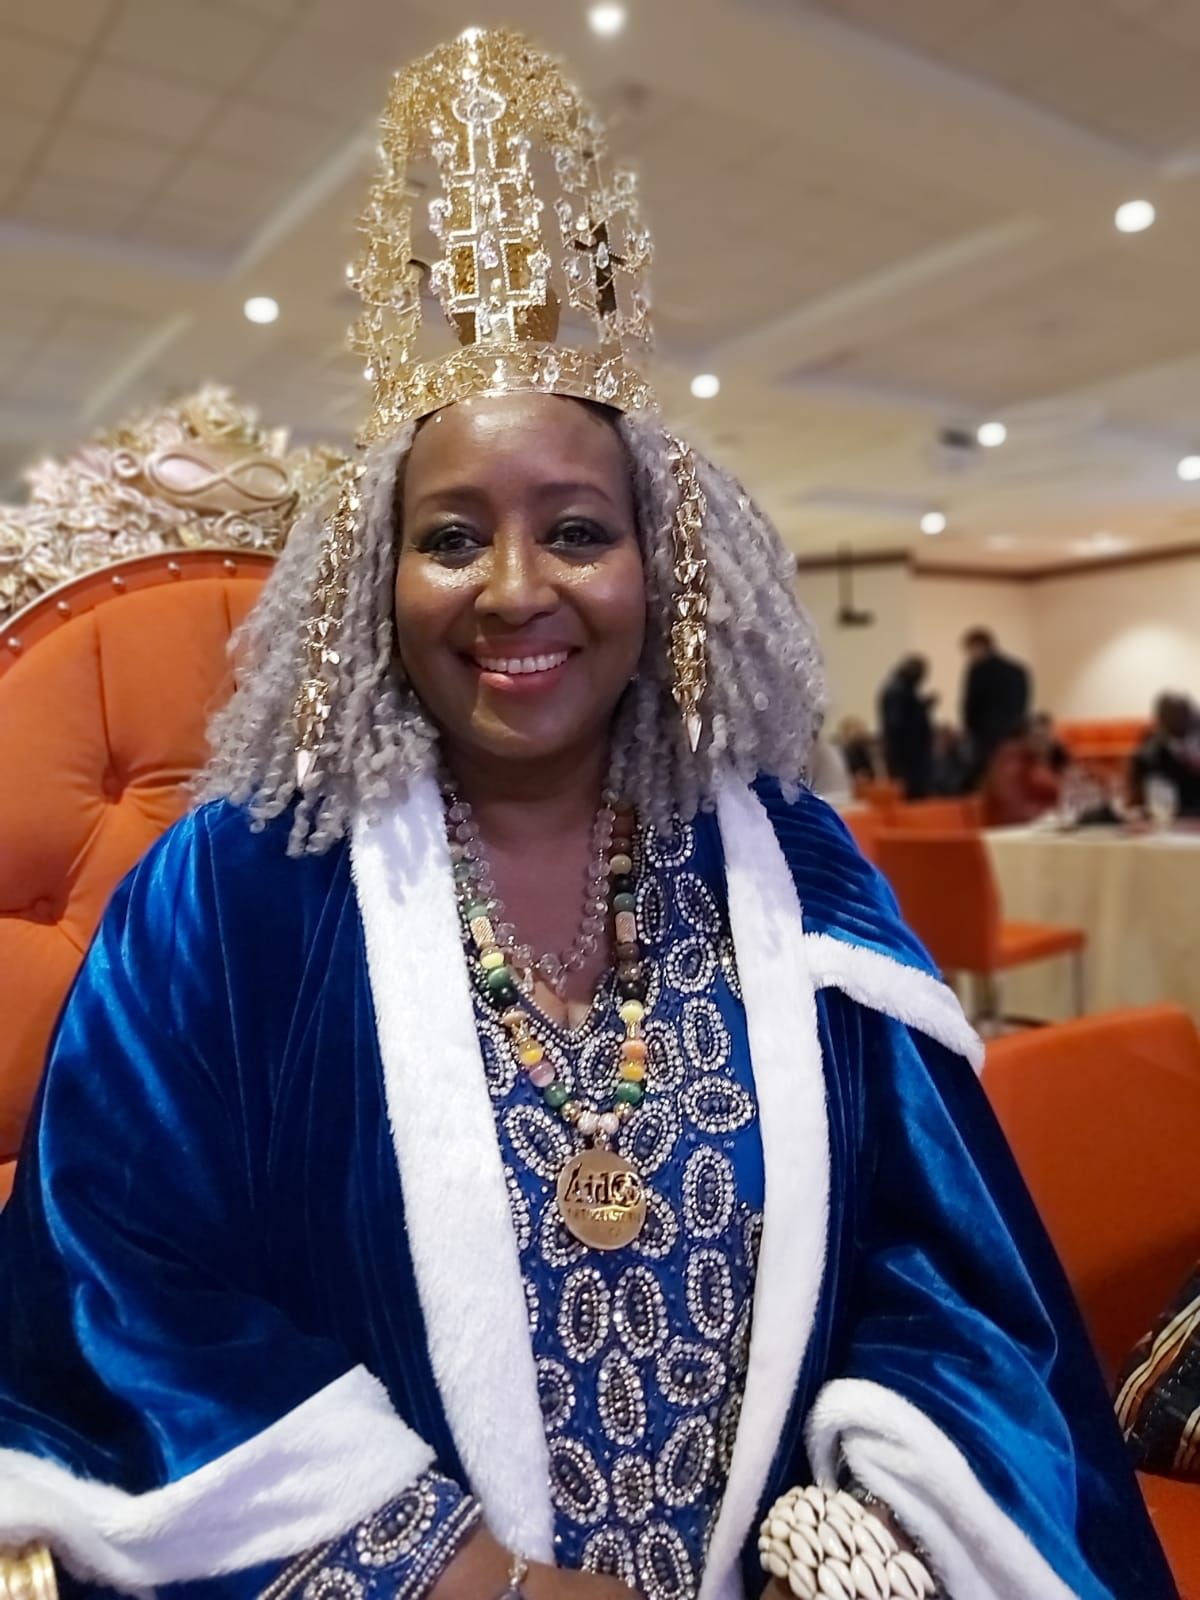 Queen Shebah III becomes the Patron of Aido Global Network